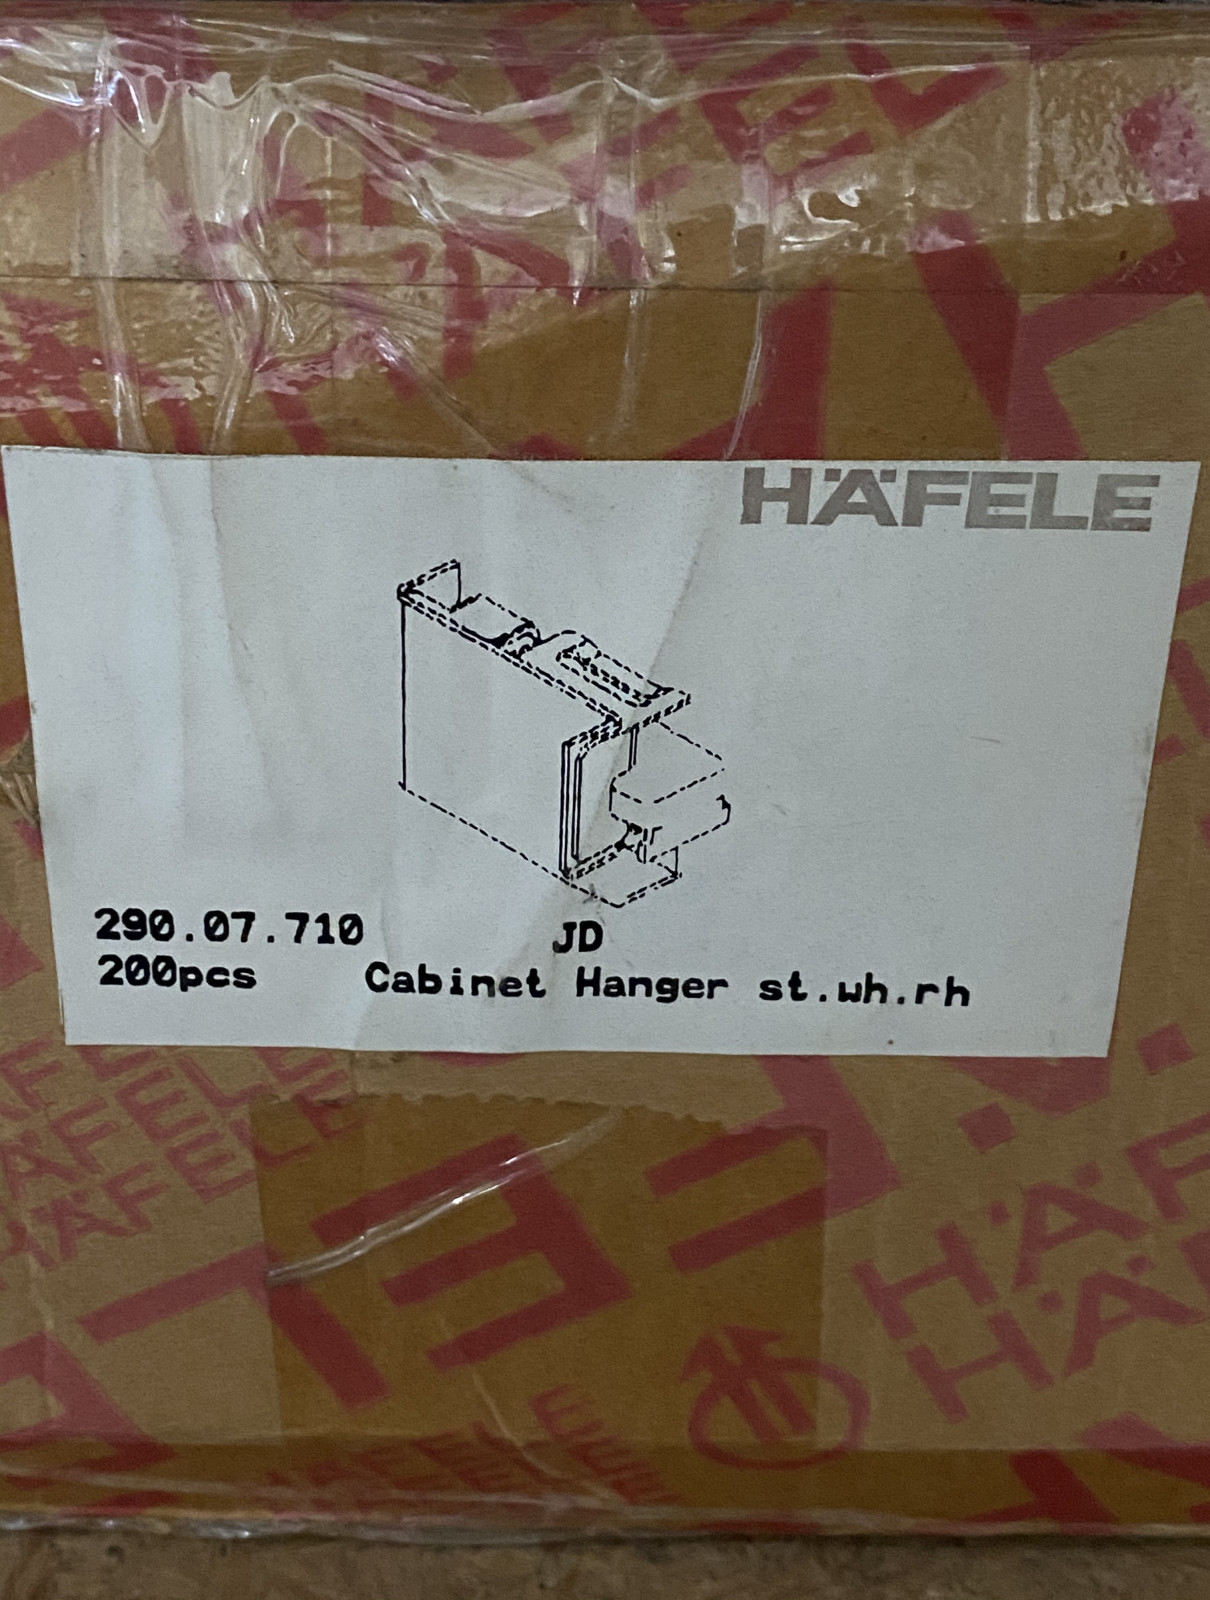 Hafele 290.07.710 Count Bulk Right Screw Mounted Cabinet Hanger Lot of 200